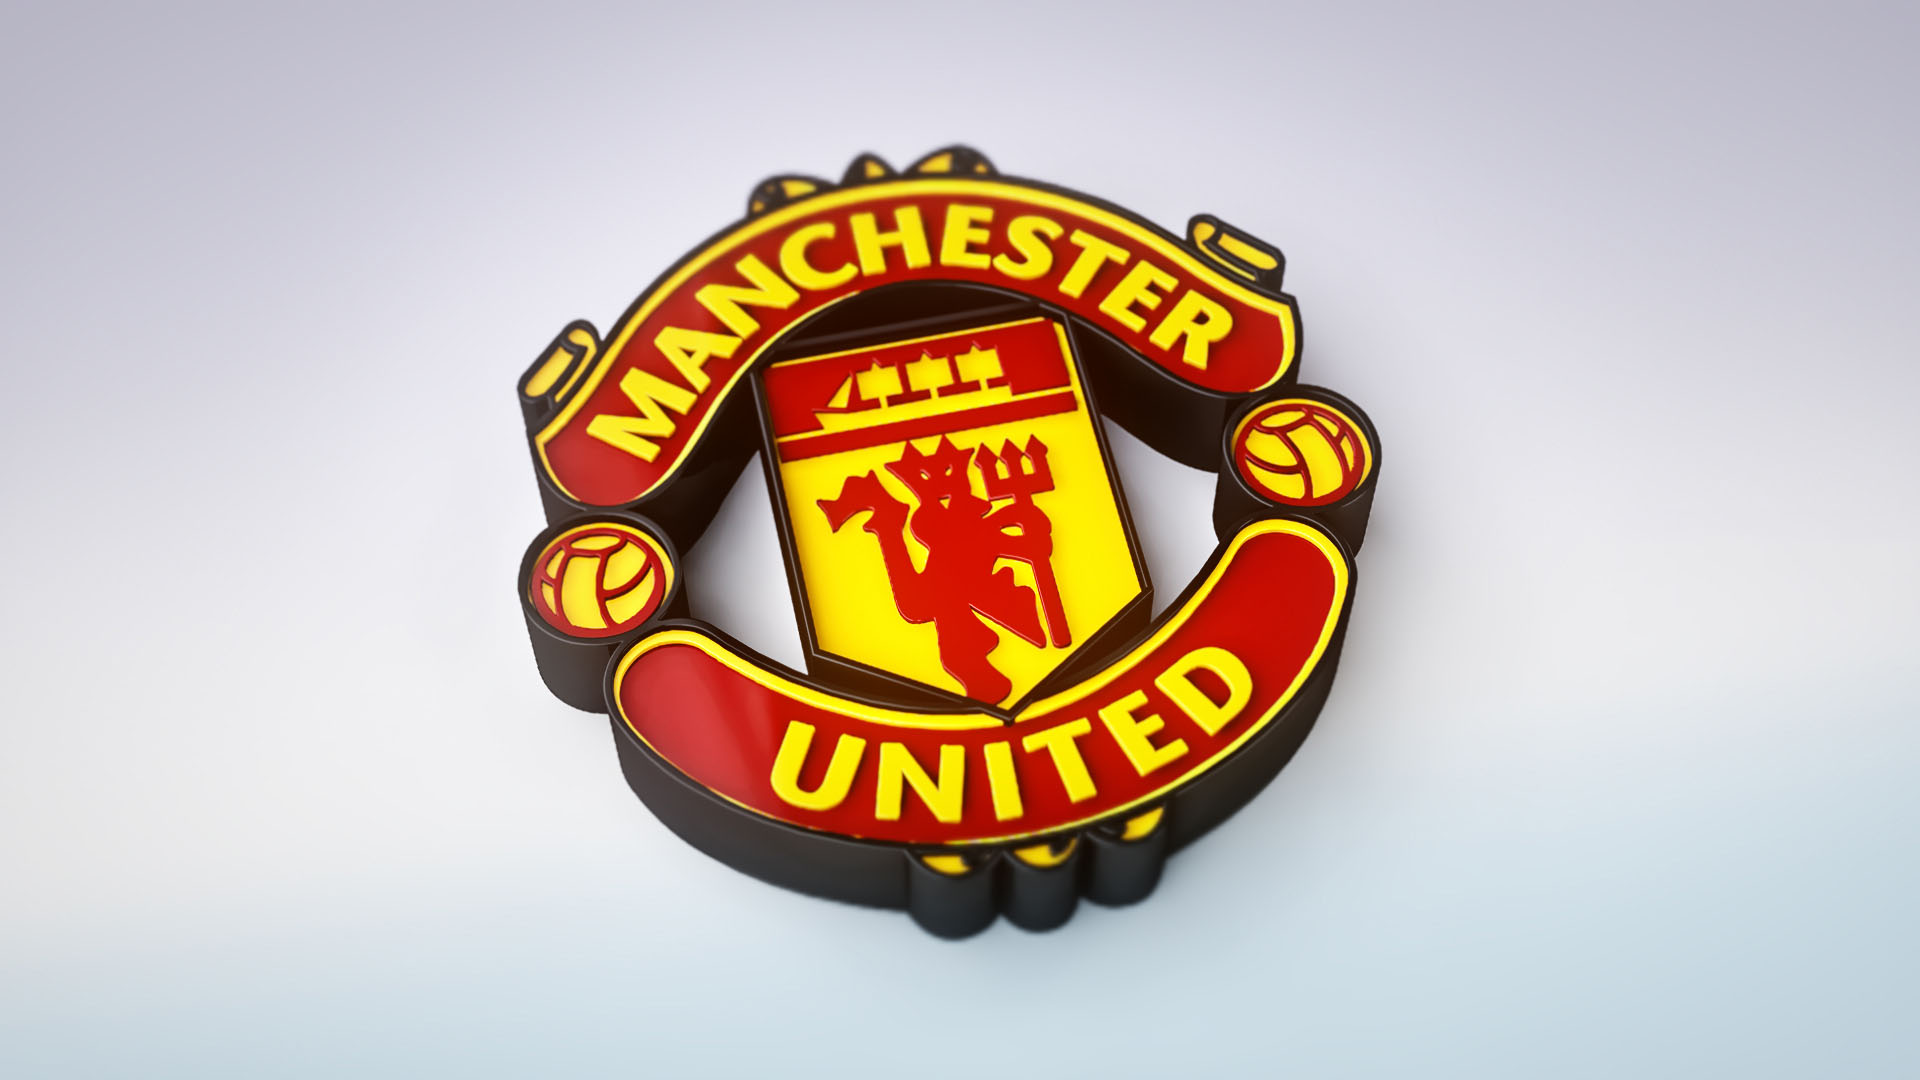 Manchester United wallpaper logo 3d